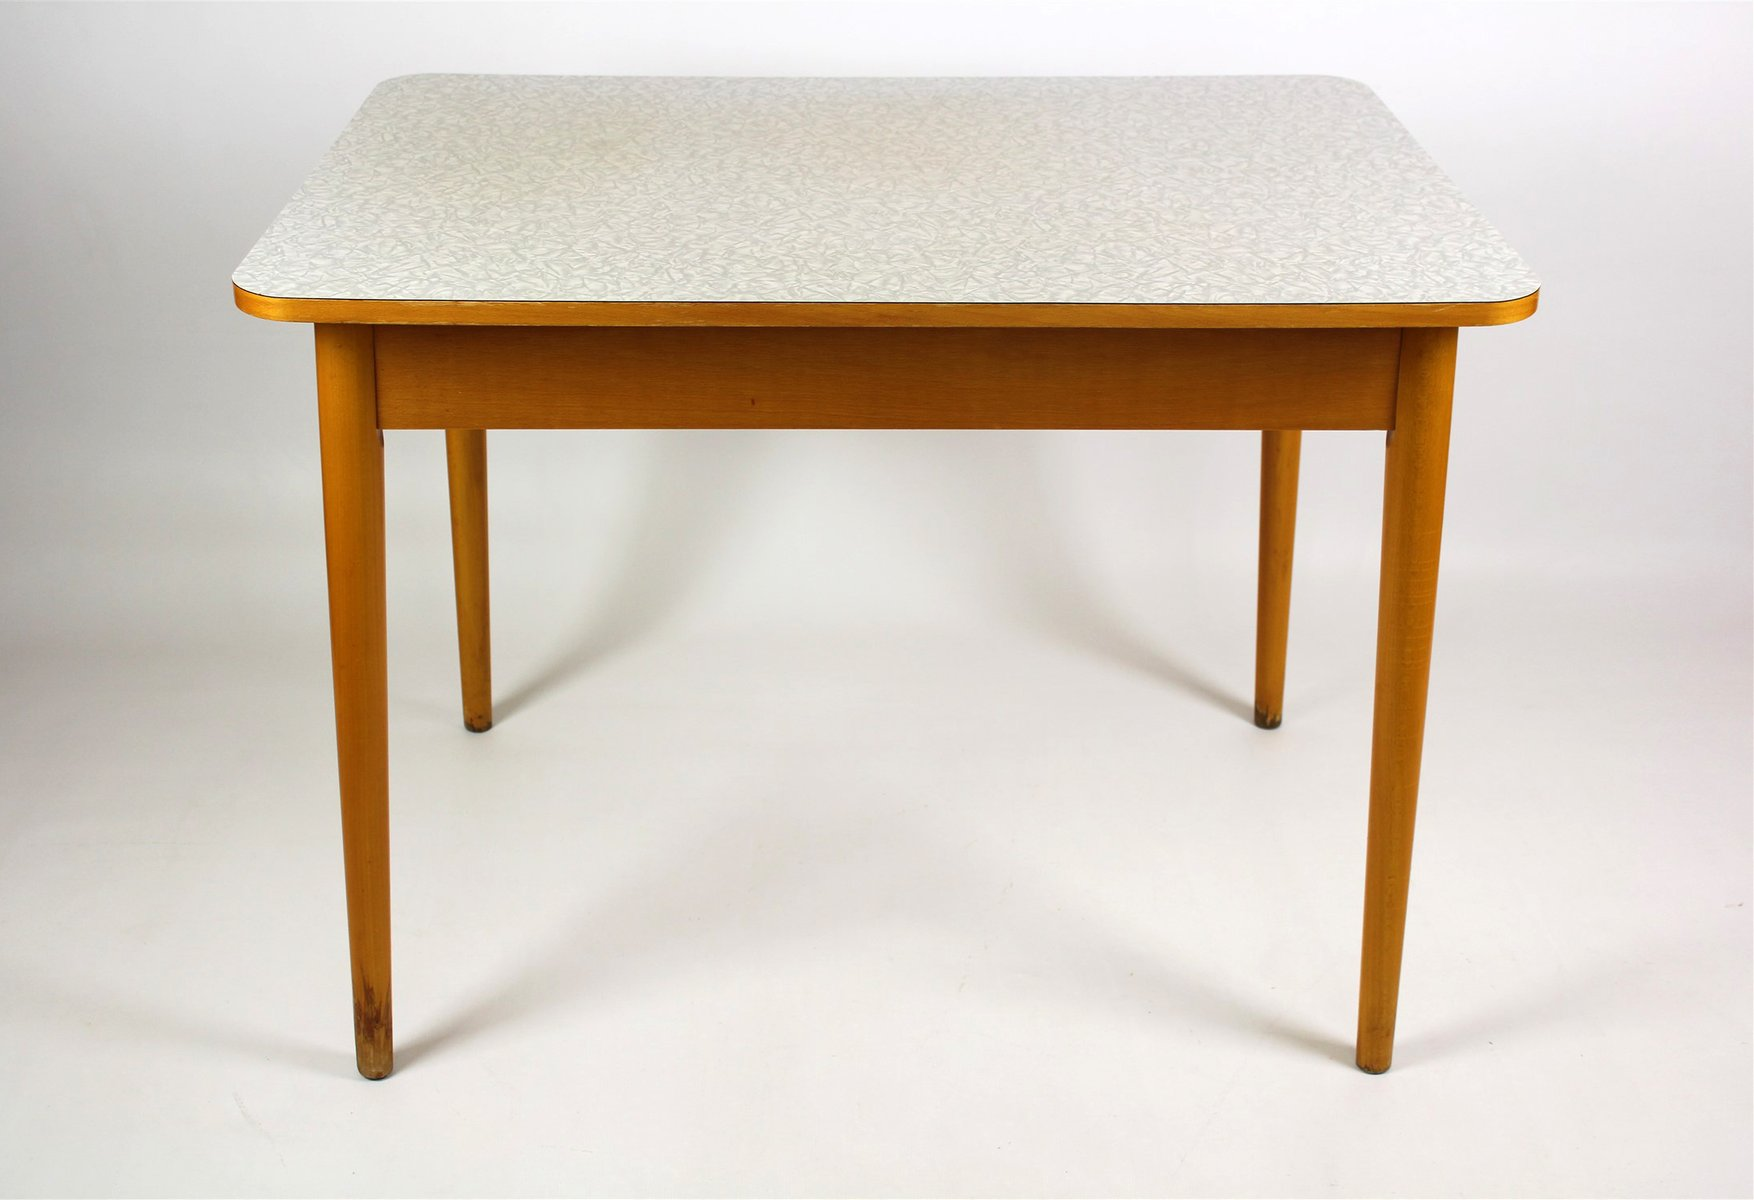 Formica kitchen table from jitona 1960s for sale at pamono - Formica top kitchen table ...